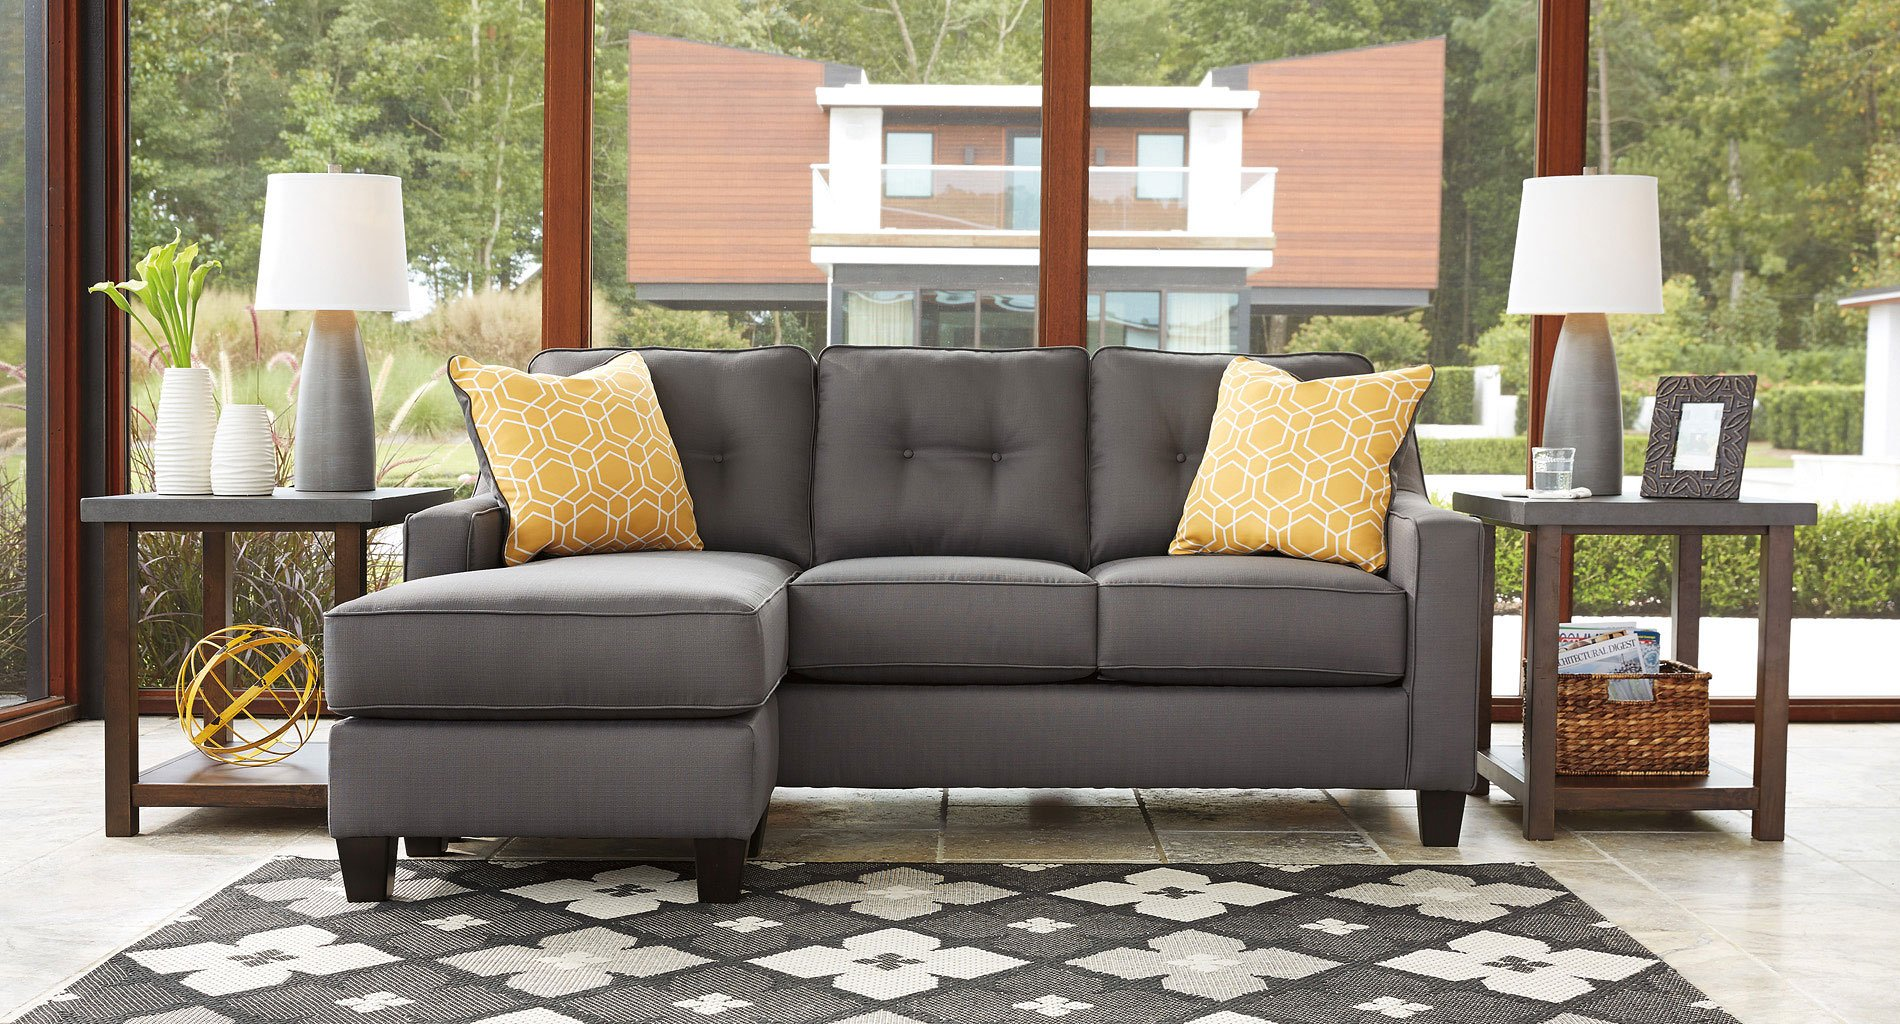 Aldie Nuvella Gray Sofa Chaise By Benchcraft 2 Review S